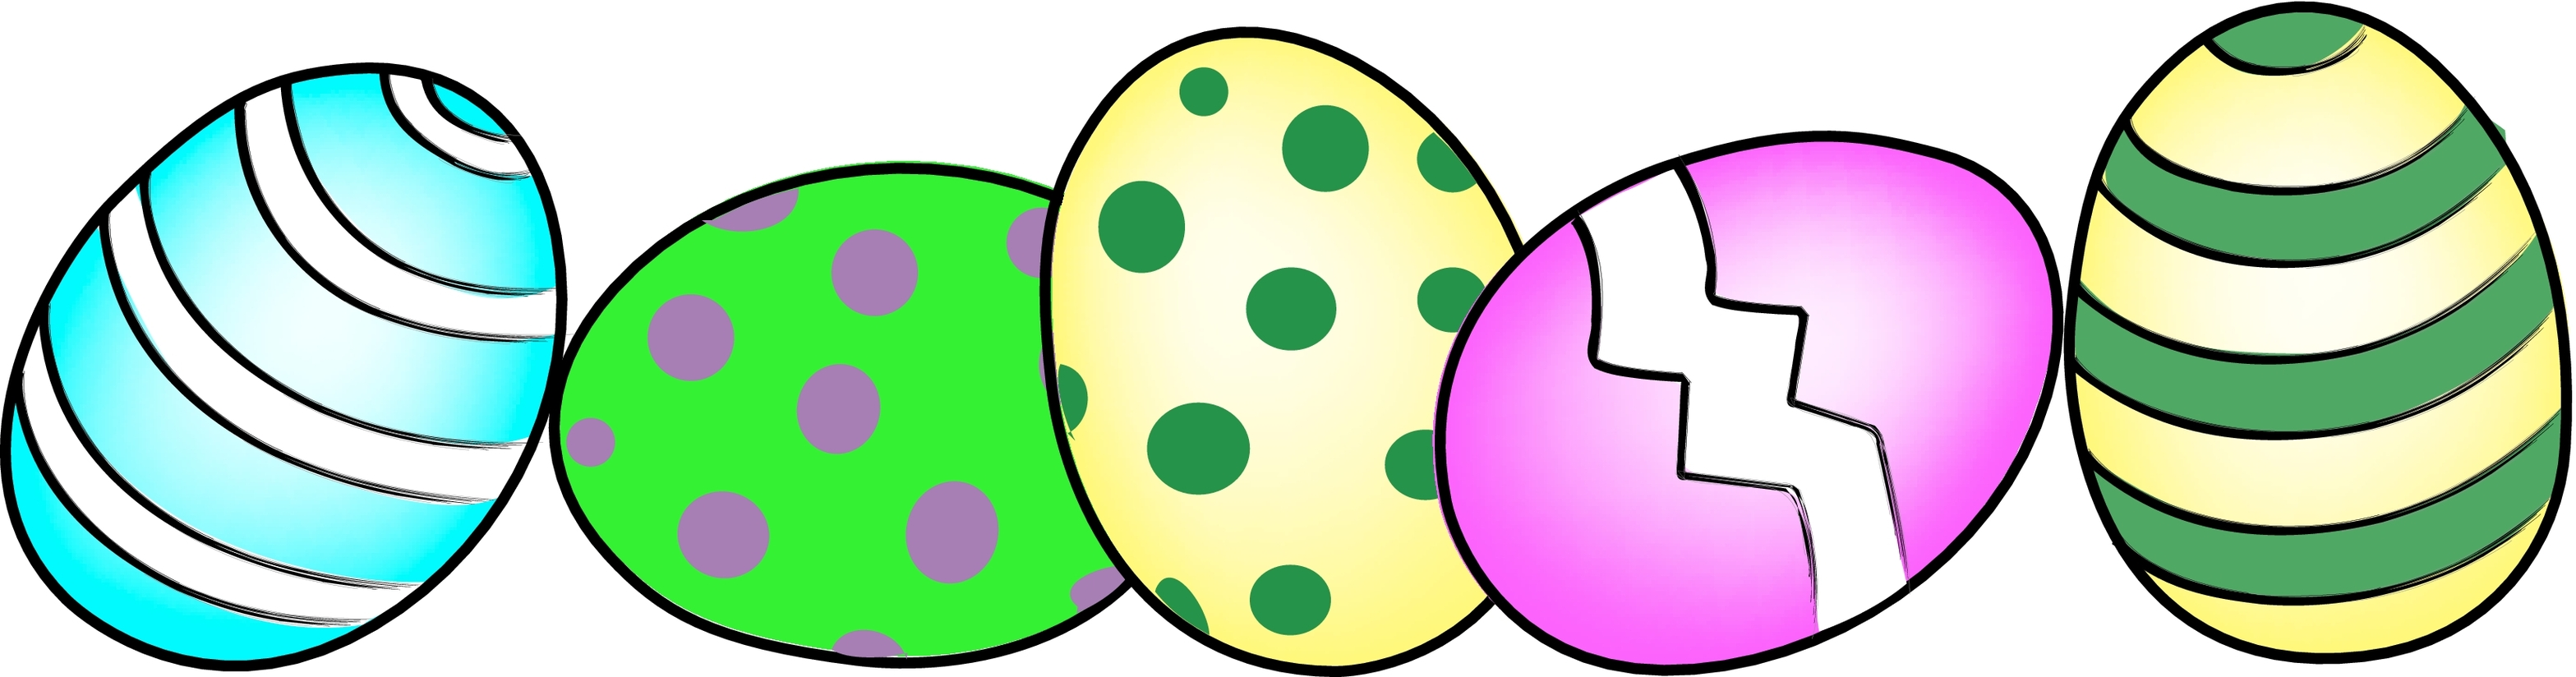 Easter Border Clipart   Free download on ClipArtMag (3135 x 824 Pixel)